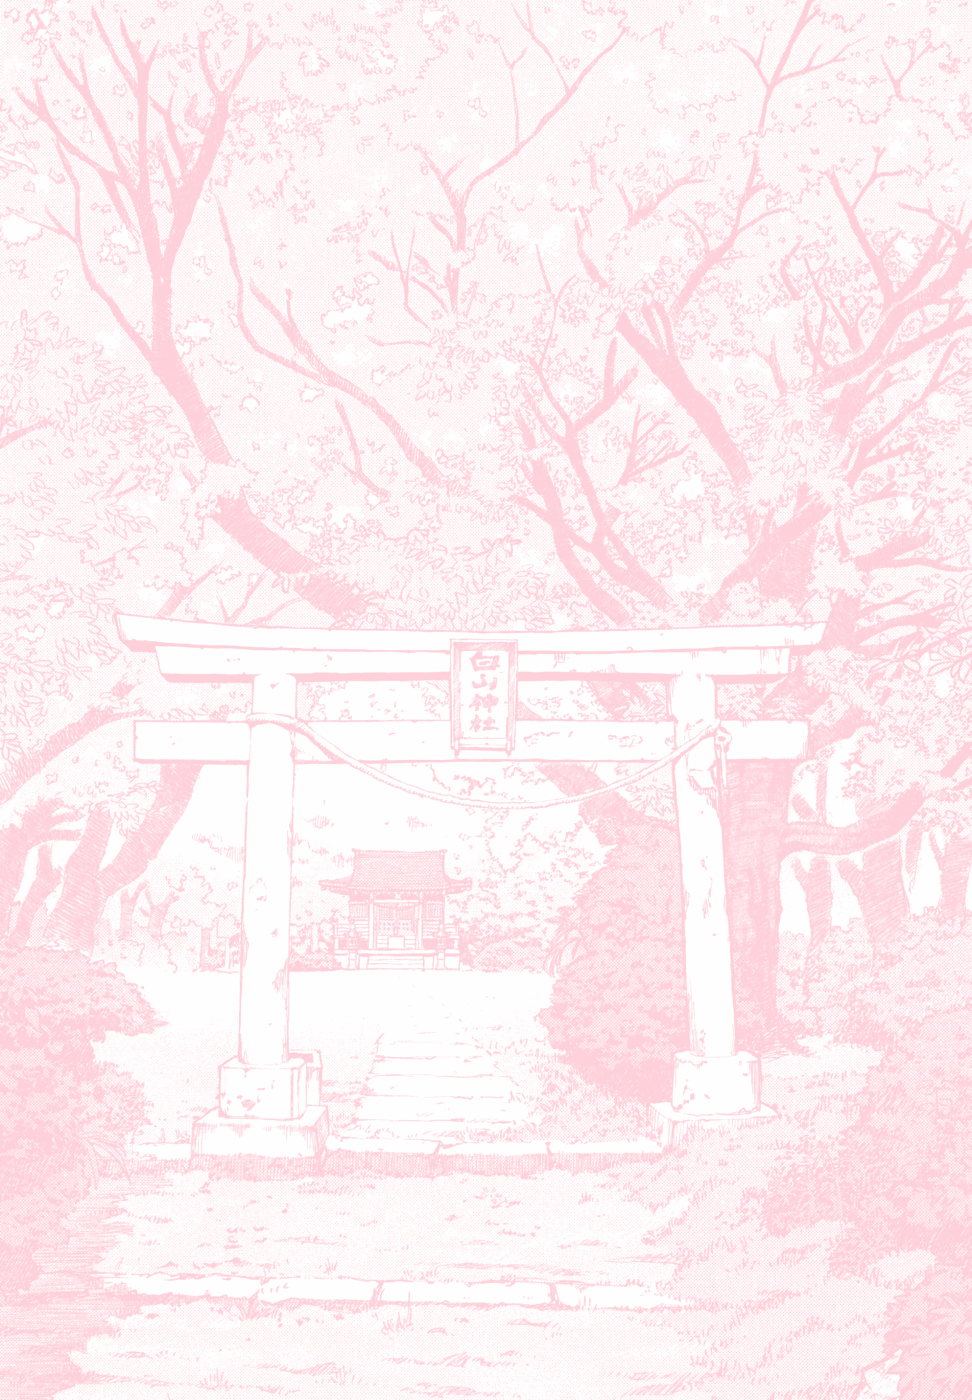 Pink Anime Aesthetic Wallpapers Posted By Michelle Anderson